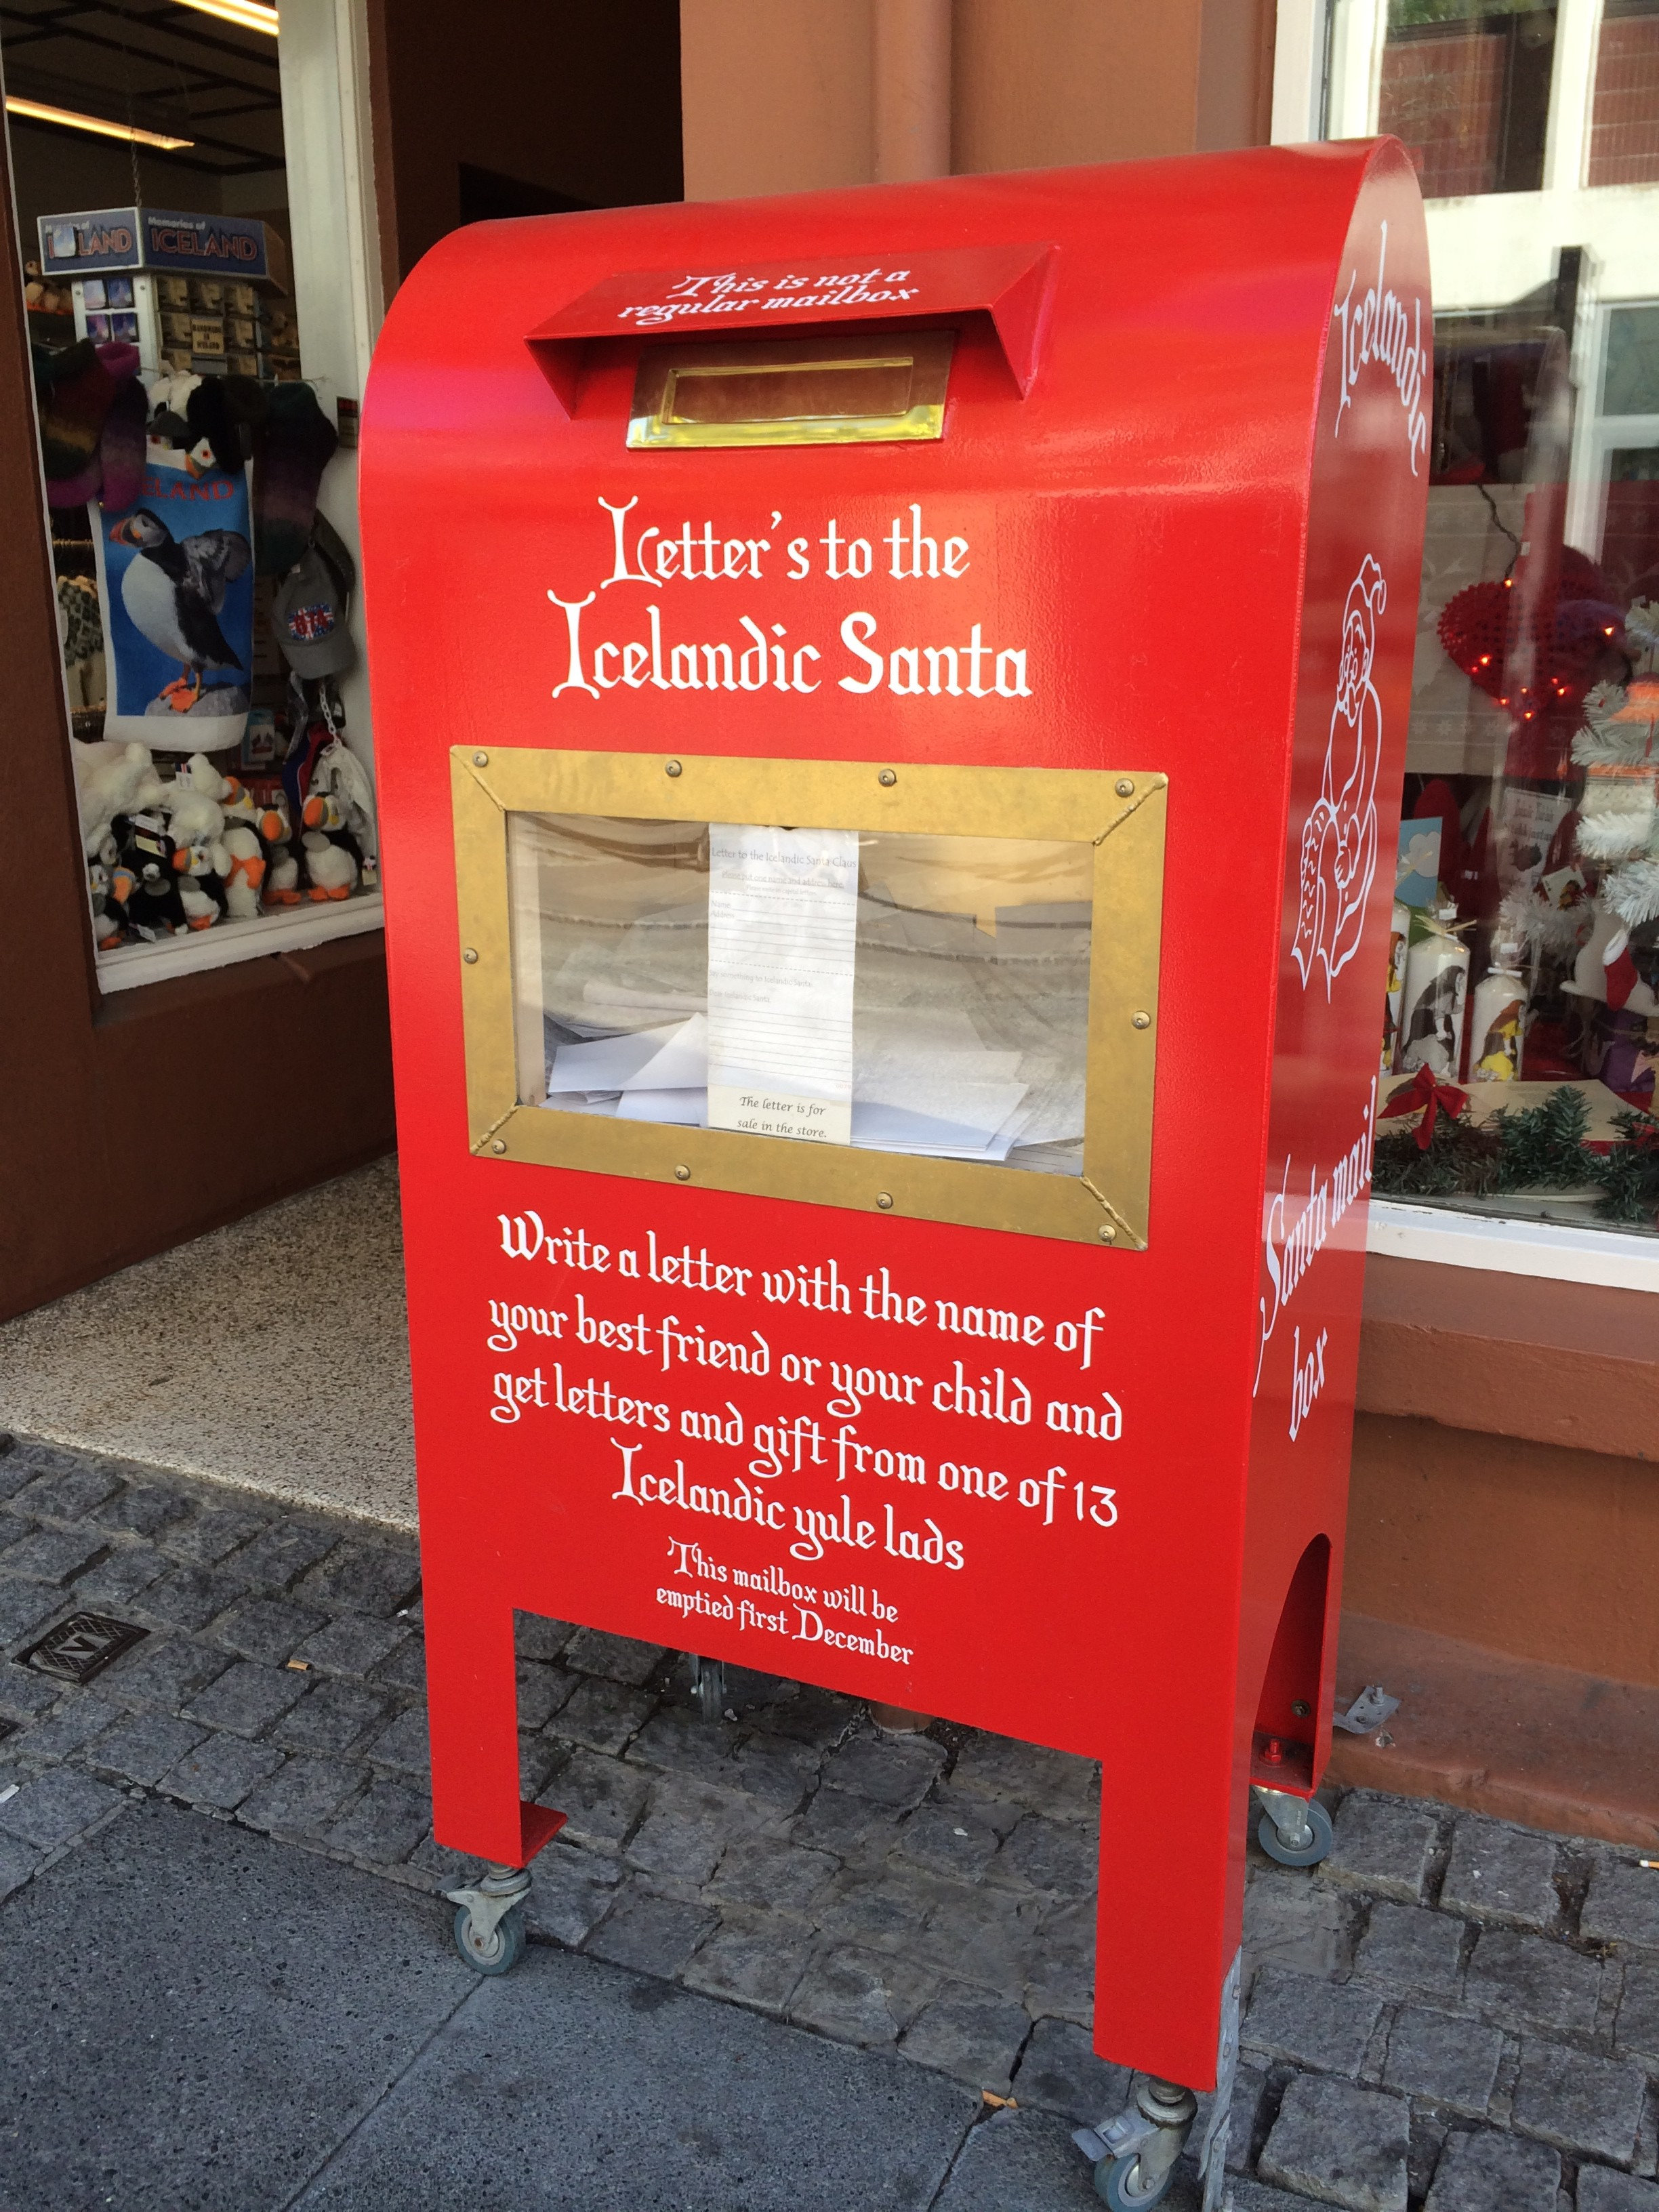 this mailbox is a direct line to icelandic santa the mailbox is located outside of a christmas shop which sells a form letter